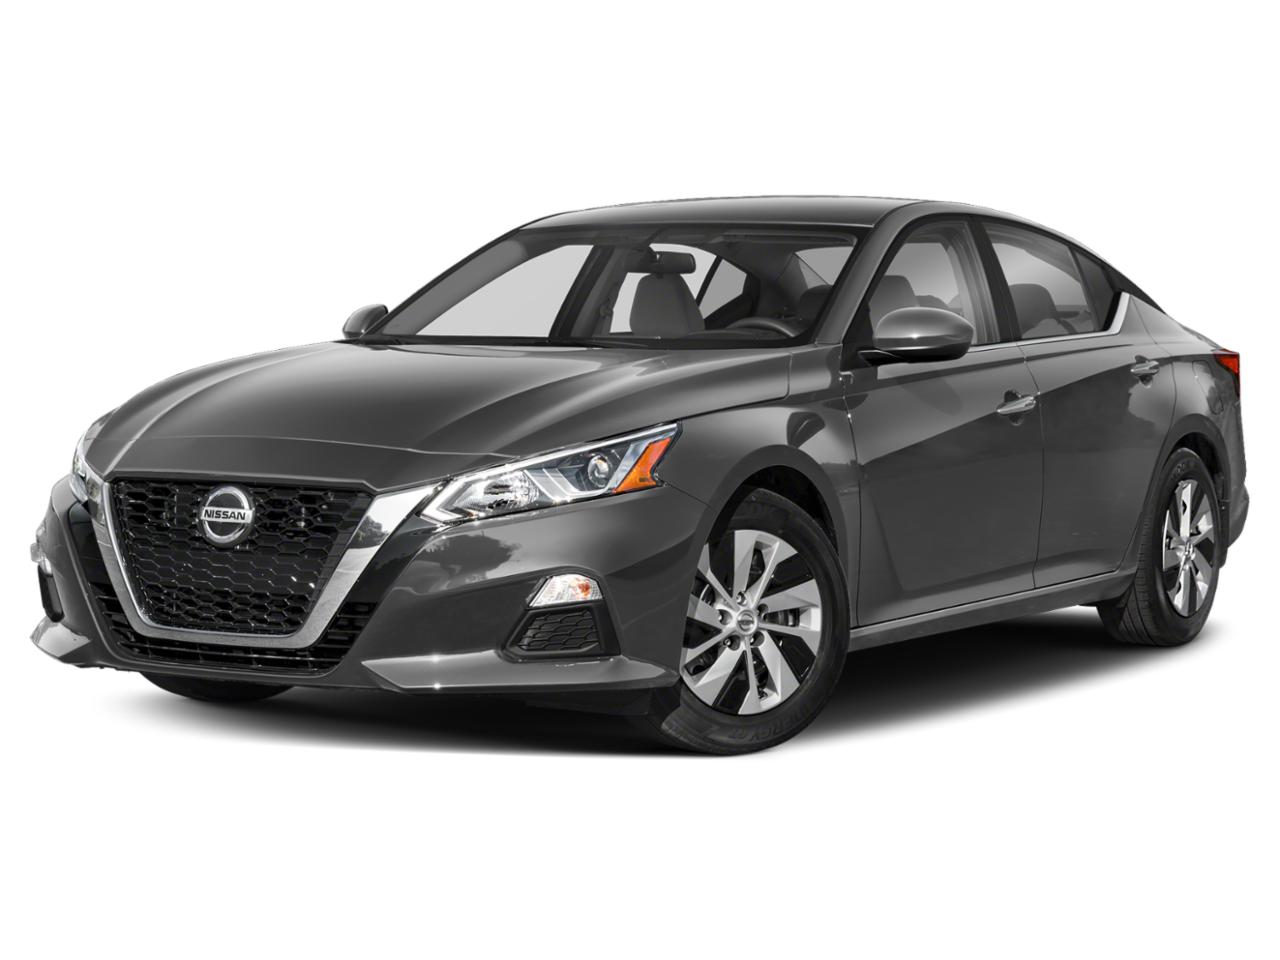 2021 Nissan Altima Vehicle Photo in TEMPLE, TX 76504-3447